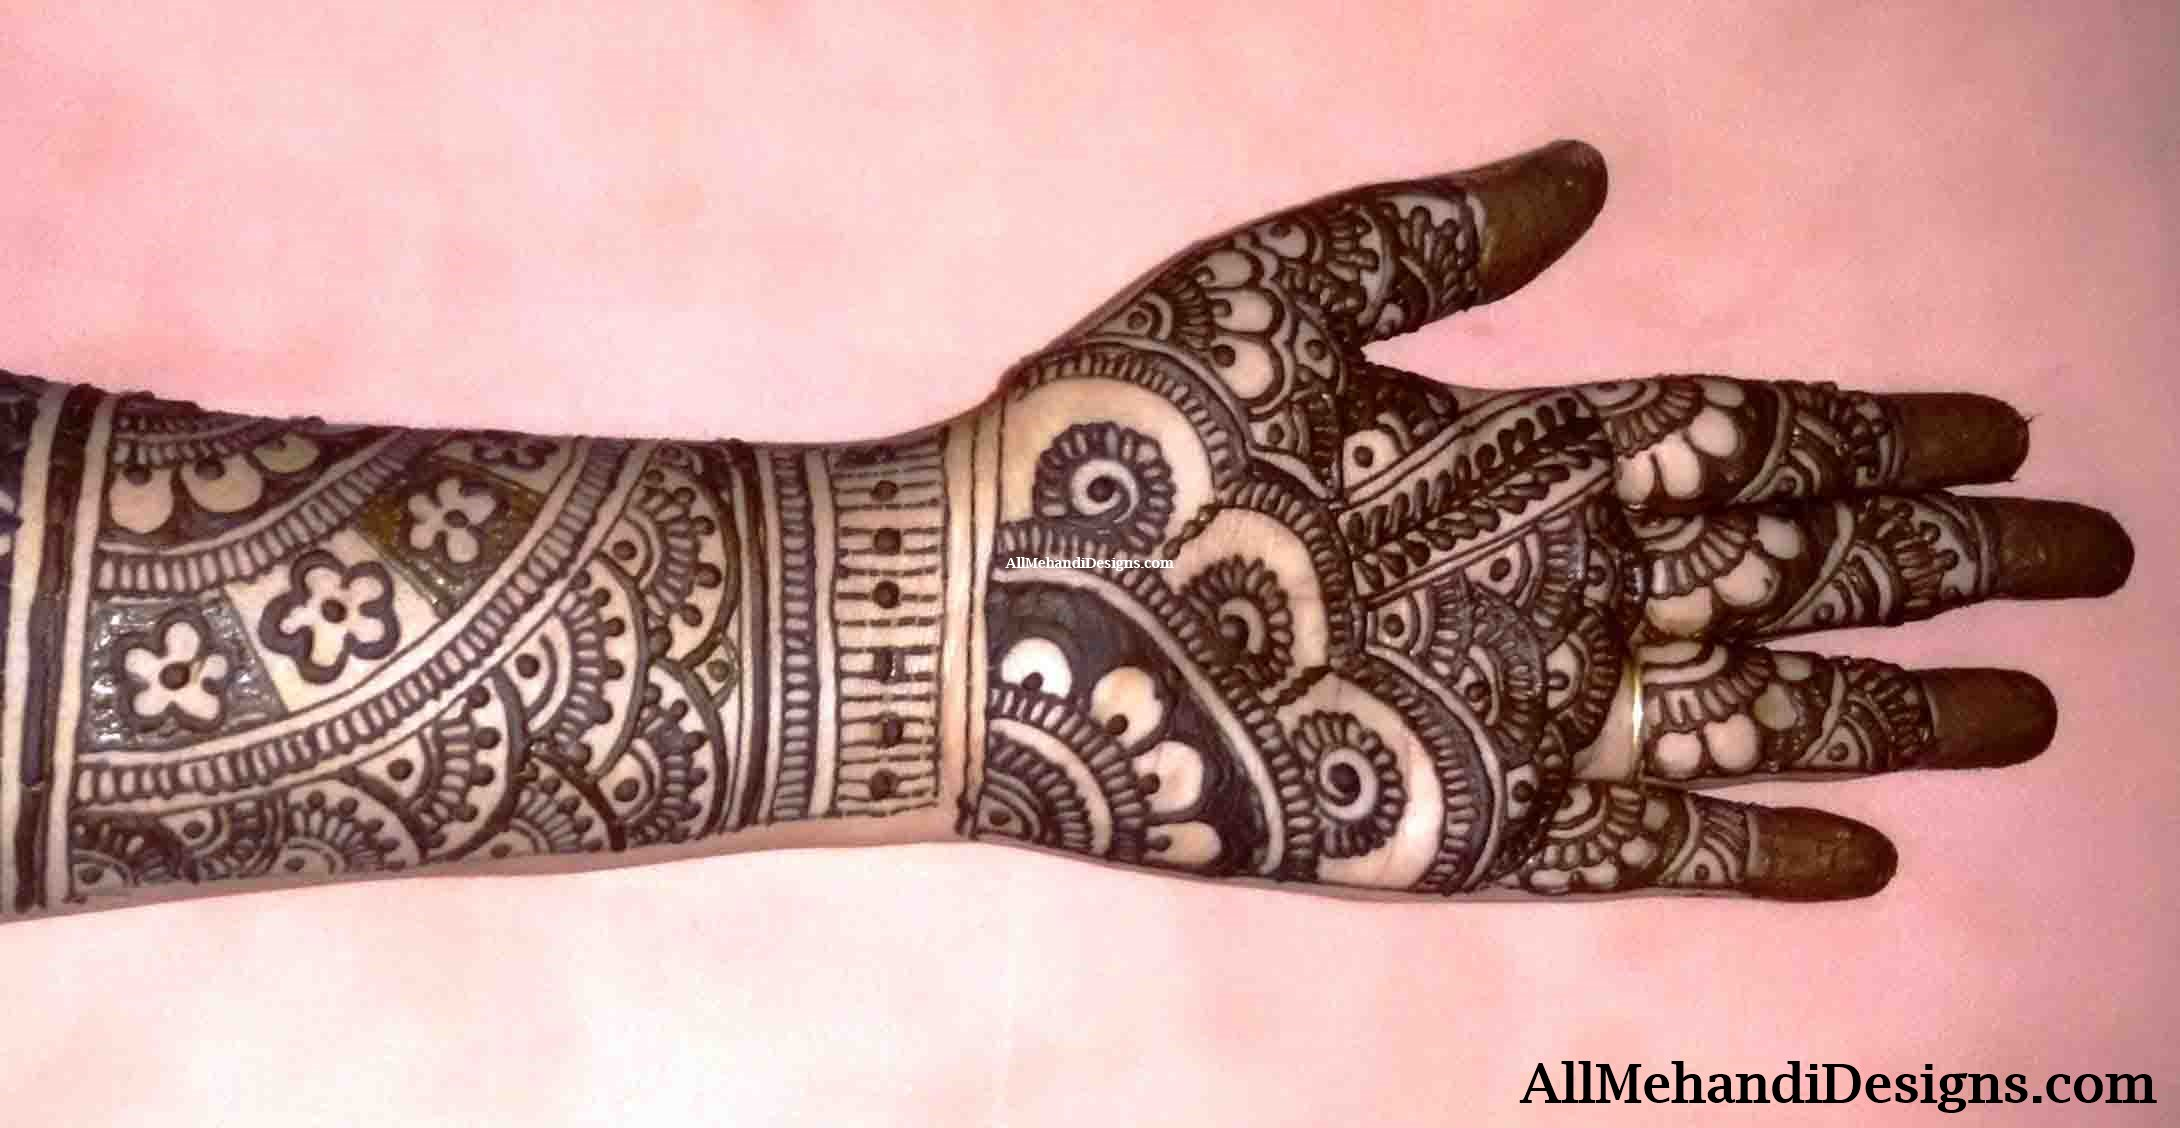 Mehndi Hands Designs : 1000 pakistani mehndi designs henna patterns & pictures